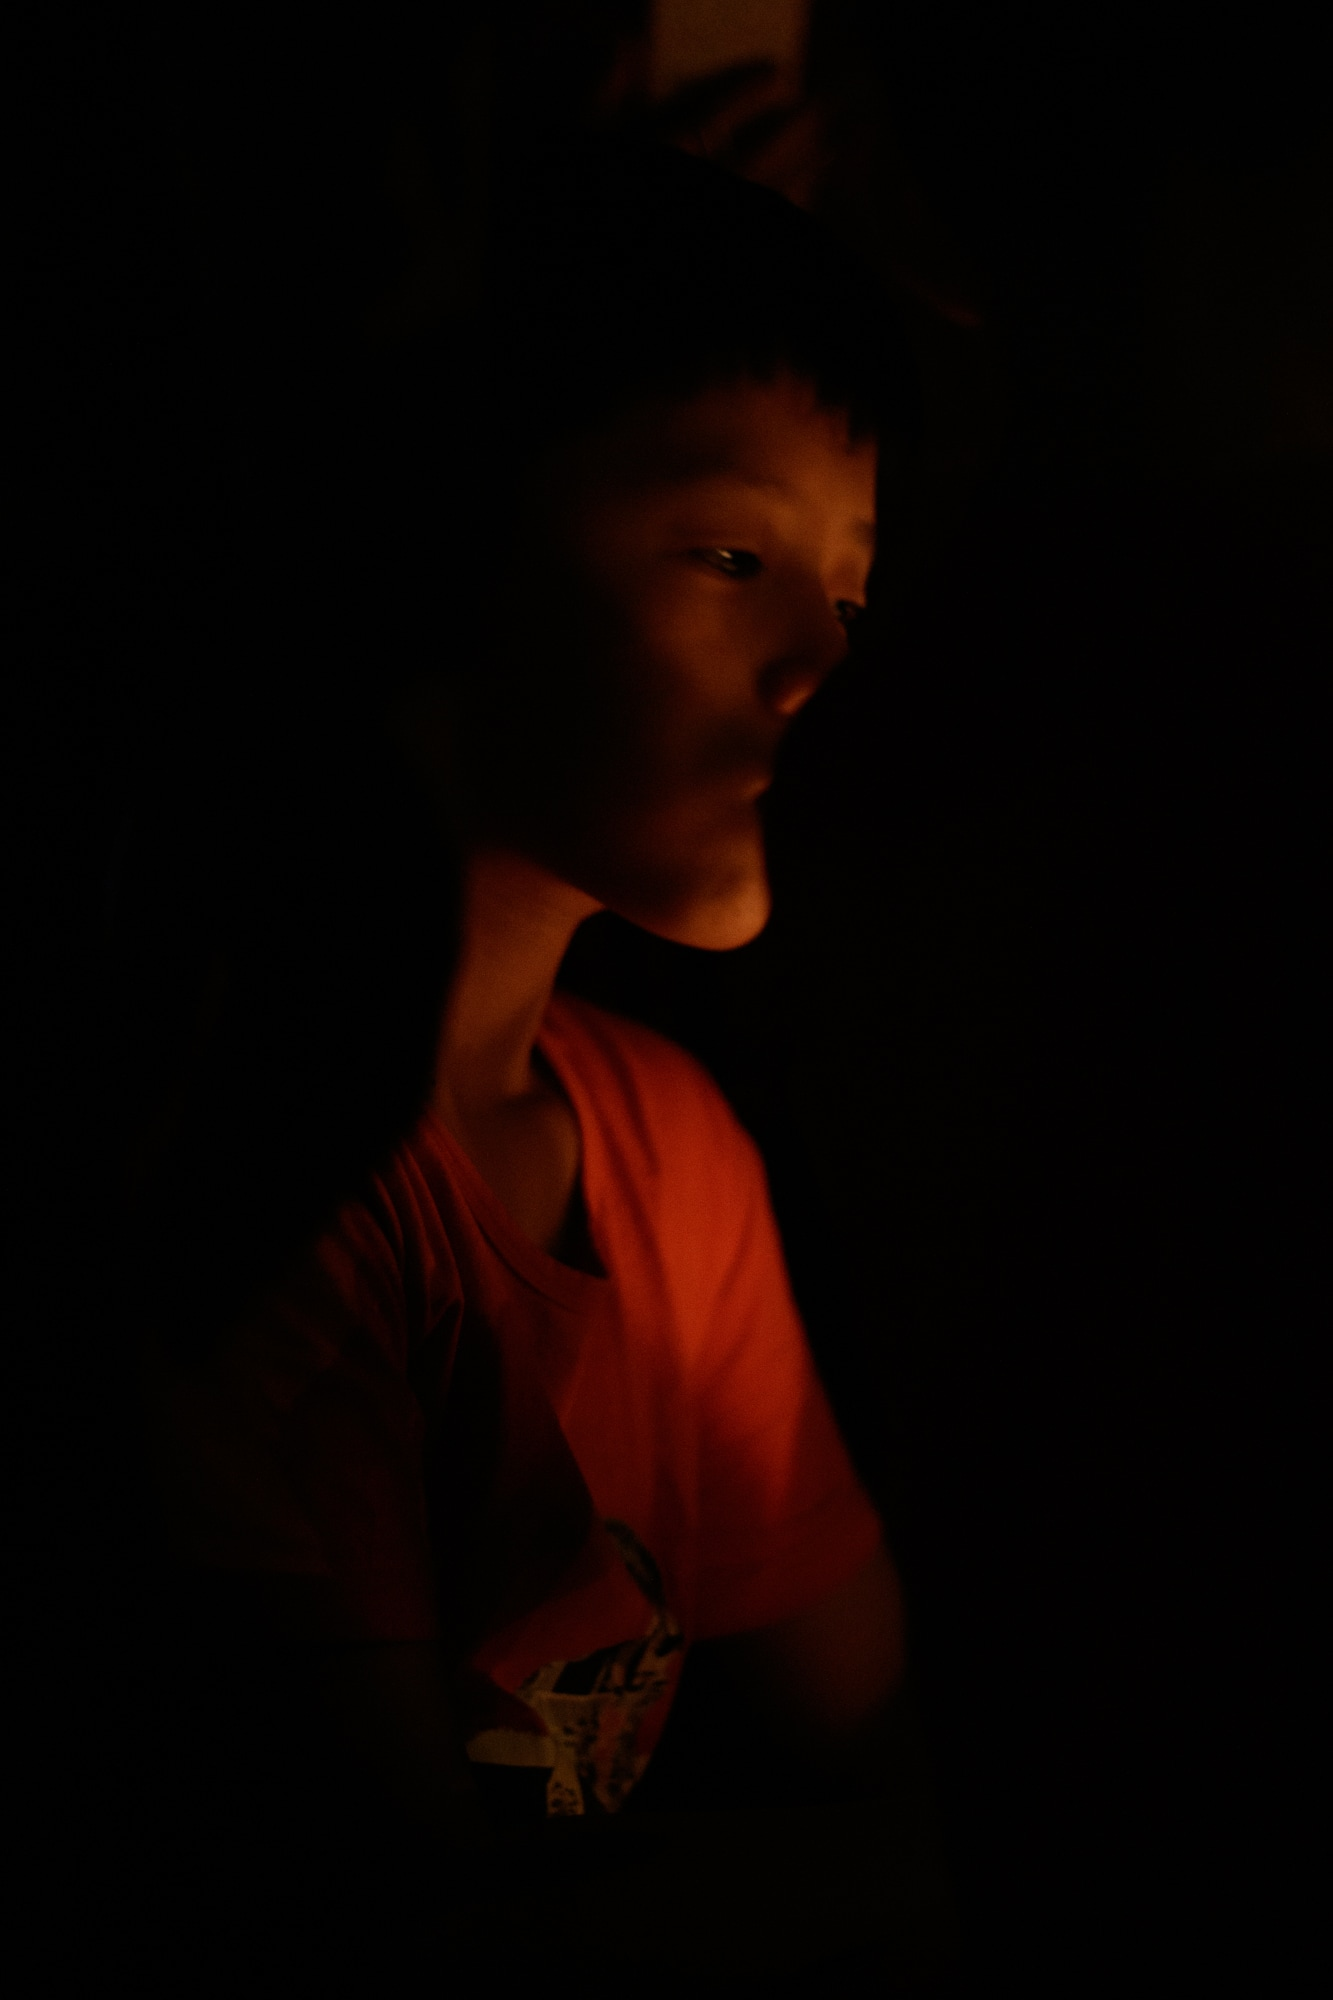 A boy lit by candle light photographed in Hoi An.